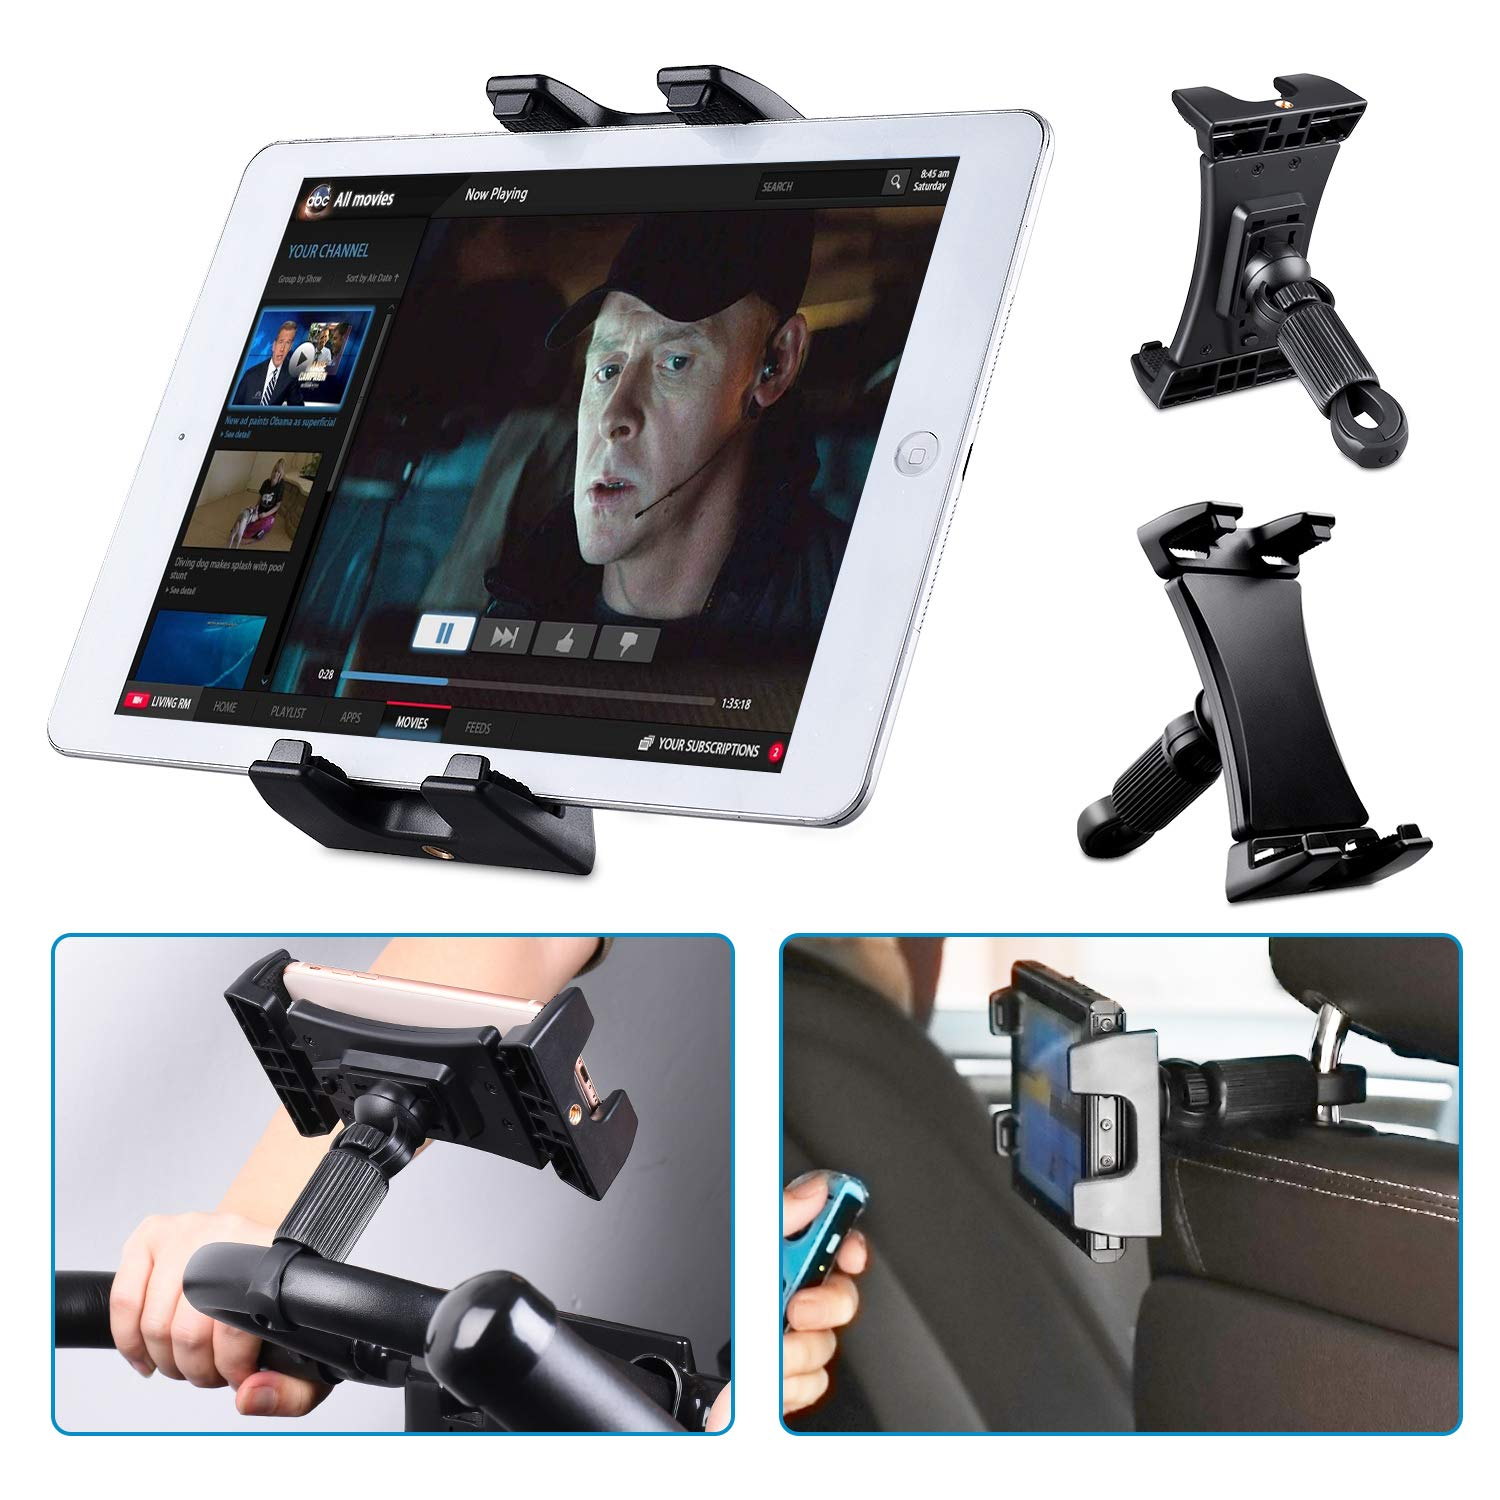 "Tendak Exercise Bike Tablet Holder, Portable Car Headrest Treadmill Exercise Gym Handlebar Microphone Stand Mount 360° Adjustable Bracket for iPad Pro, iPad Mini, iPad Air 4.7-12.9"" Tablets Cell Phone"